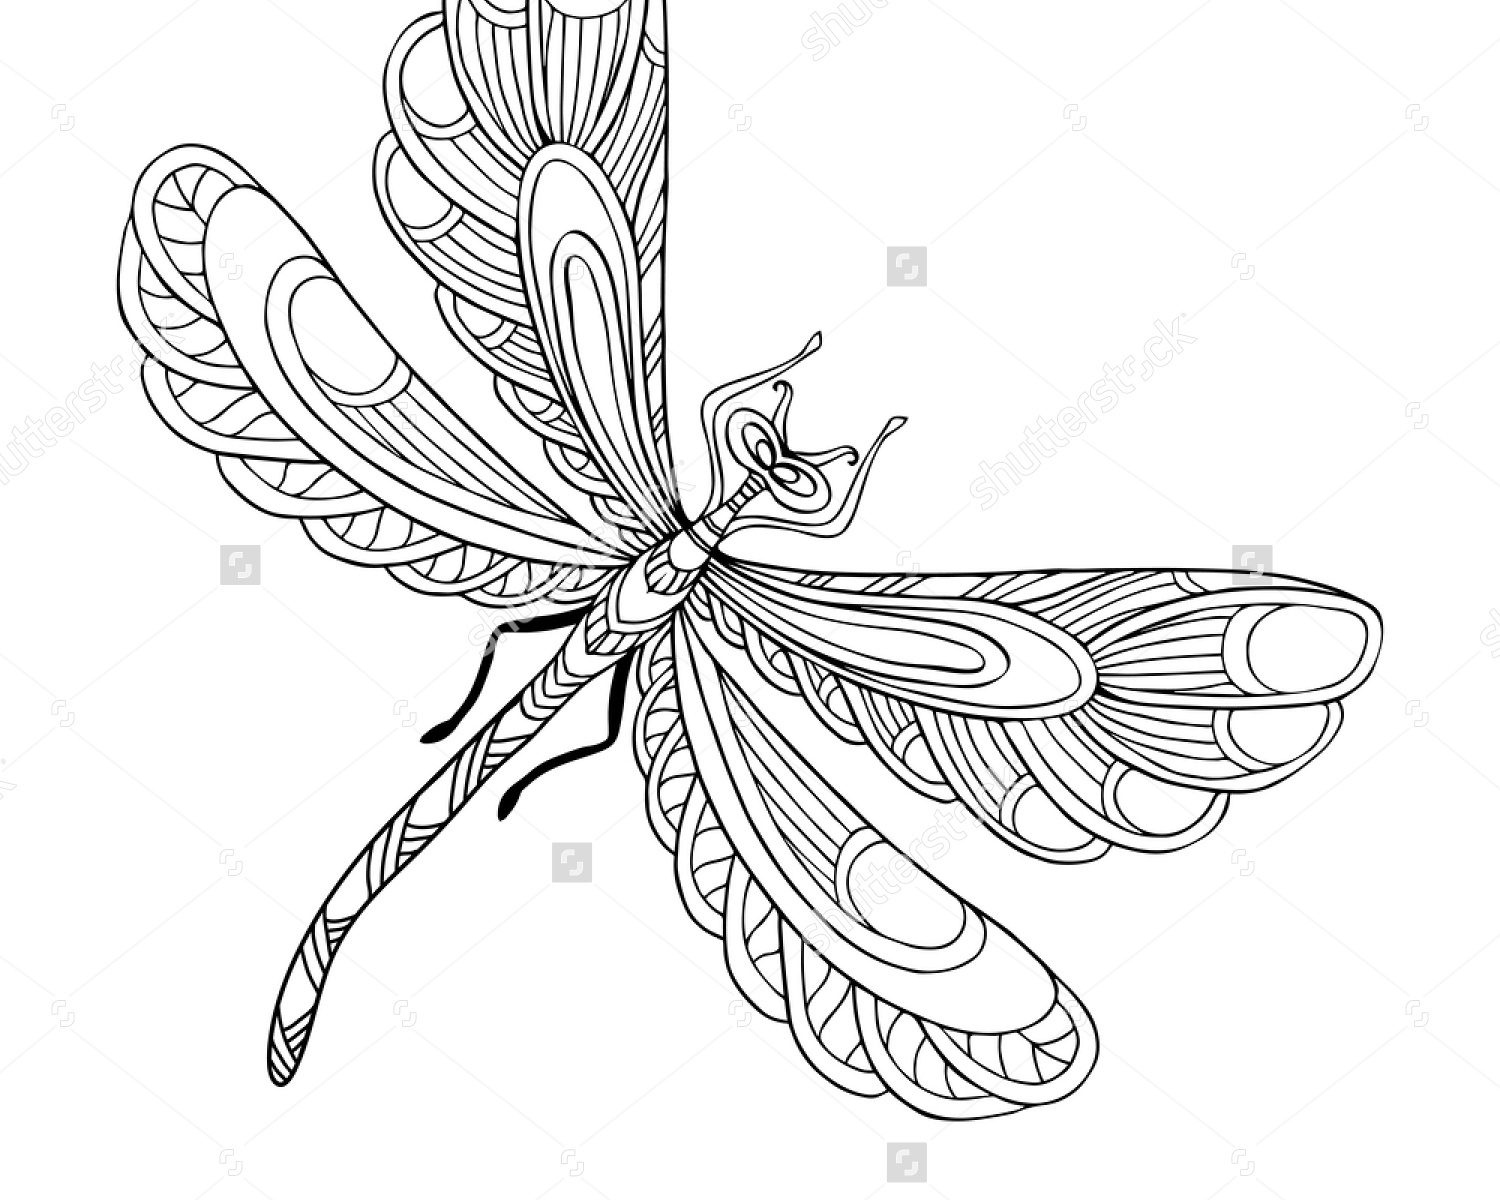 1500x1200 Dragonfly Coloring Pages For Kids Free To Print Fantastic Animals